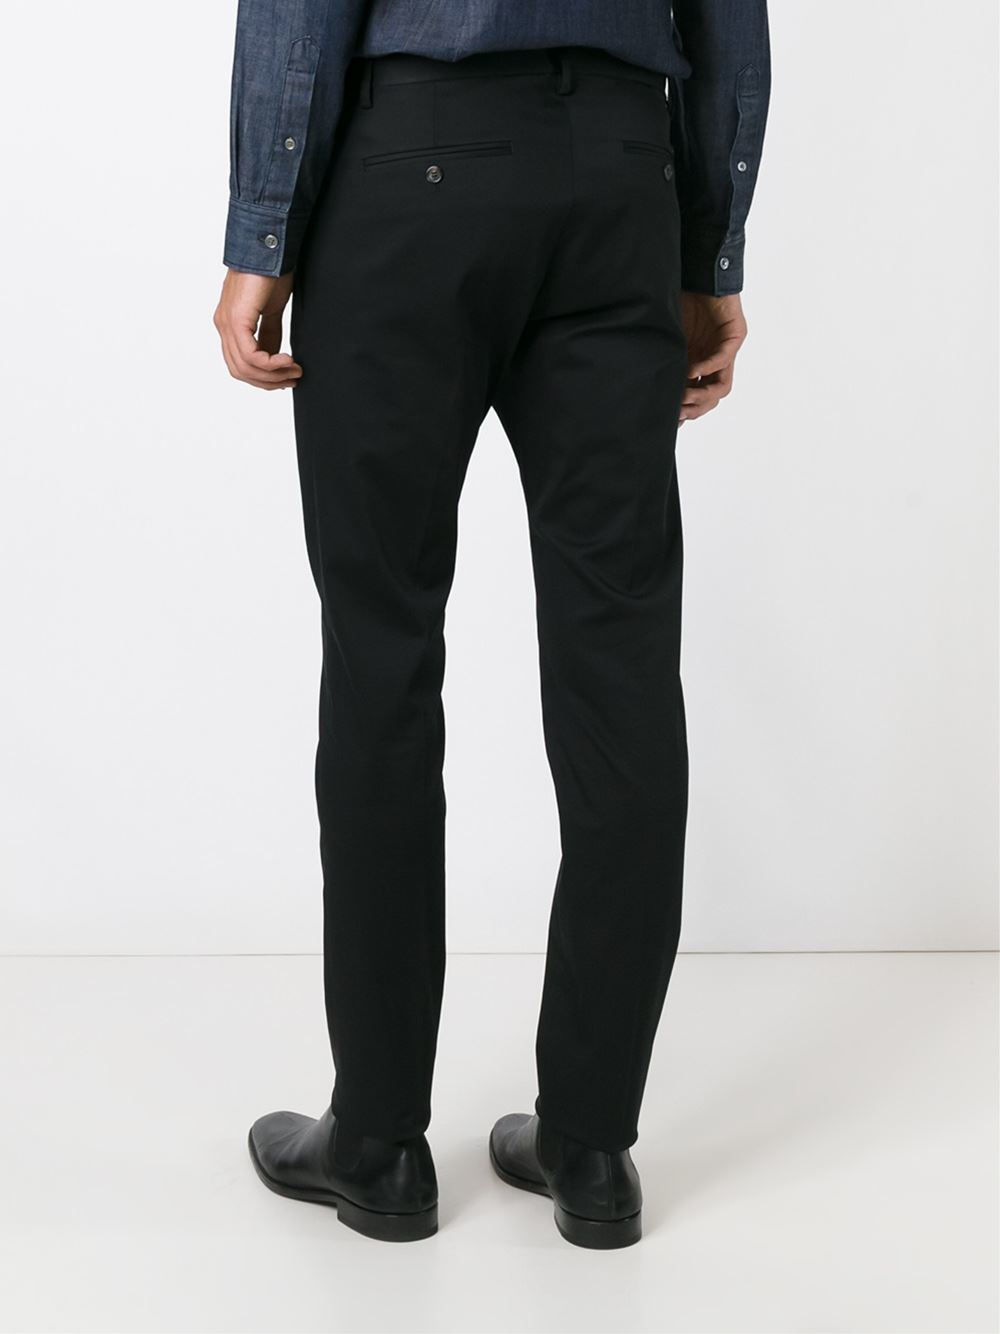 Woven fabric Check print Ring waist belt Tapered leg Our model wears a UK 8 and is cm/5'9'' tall.